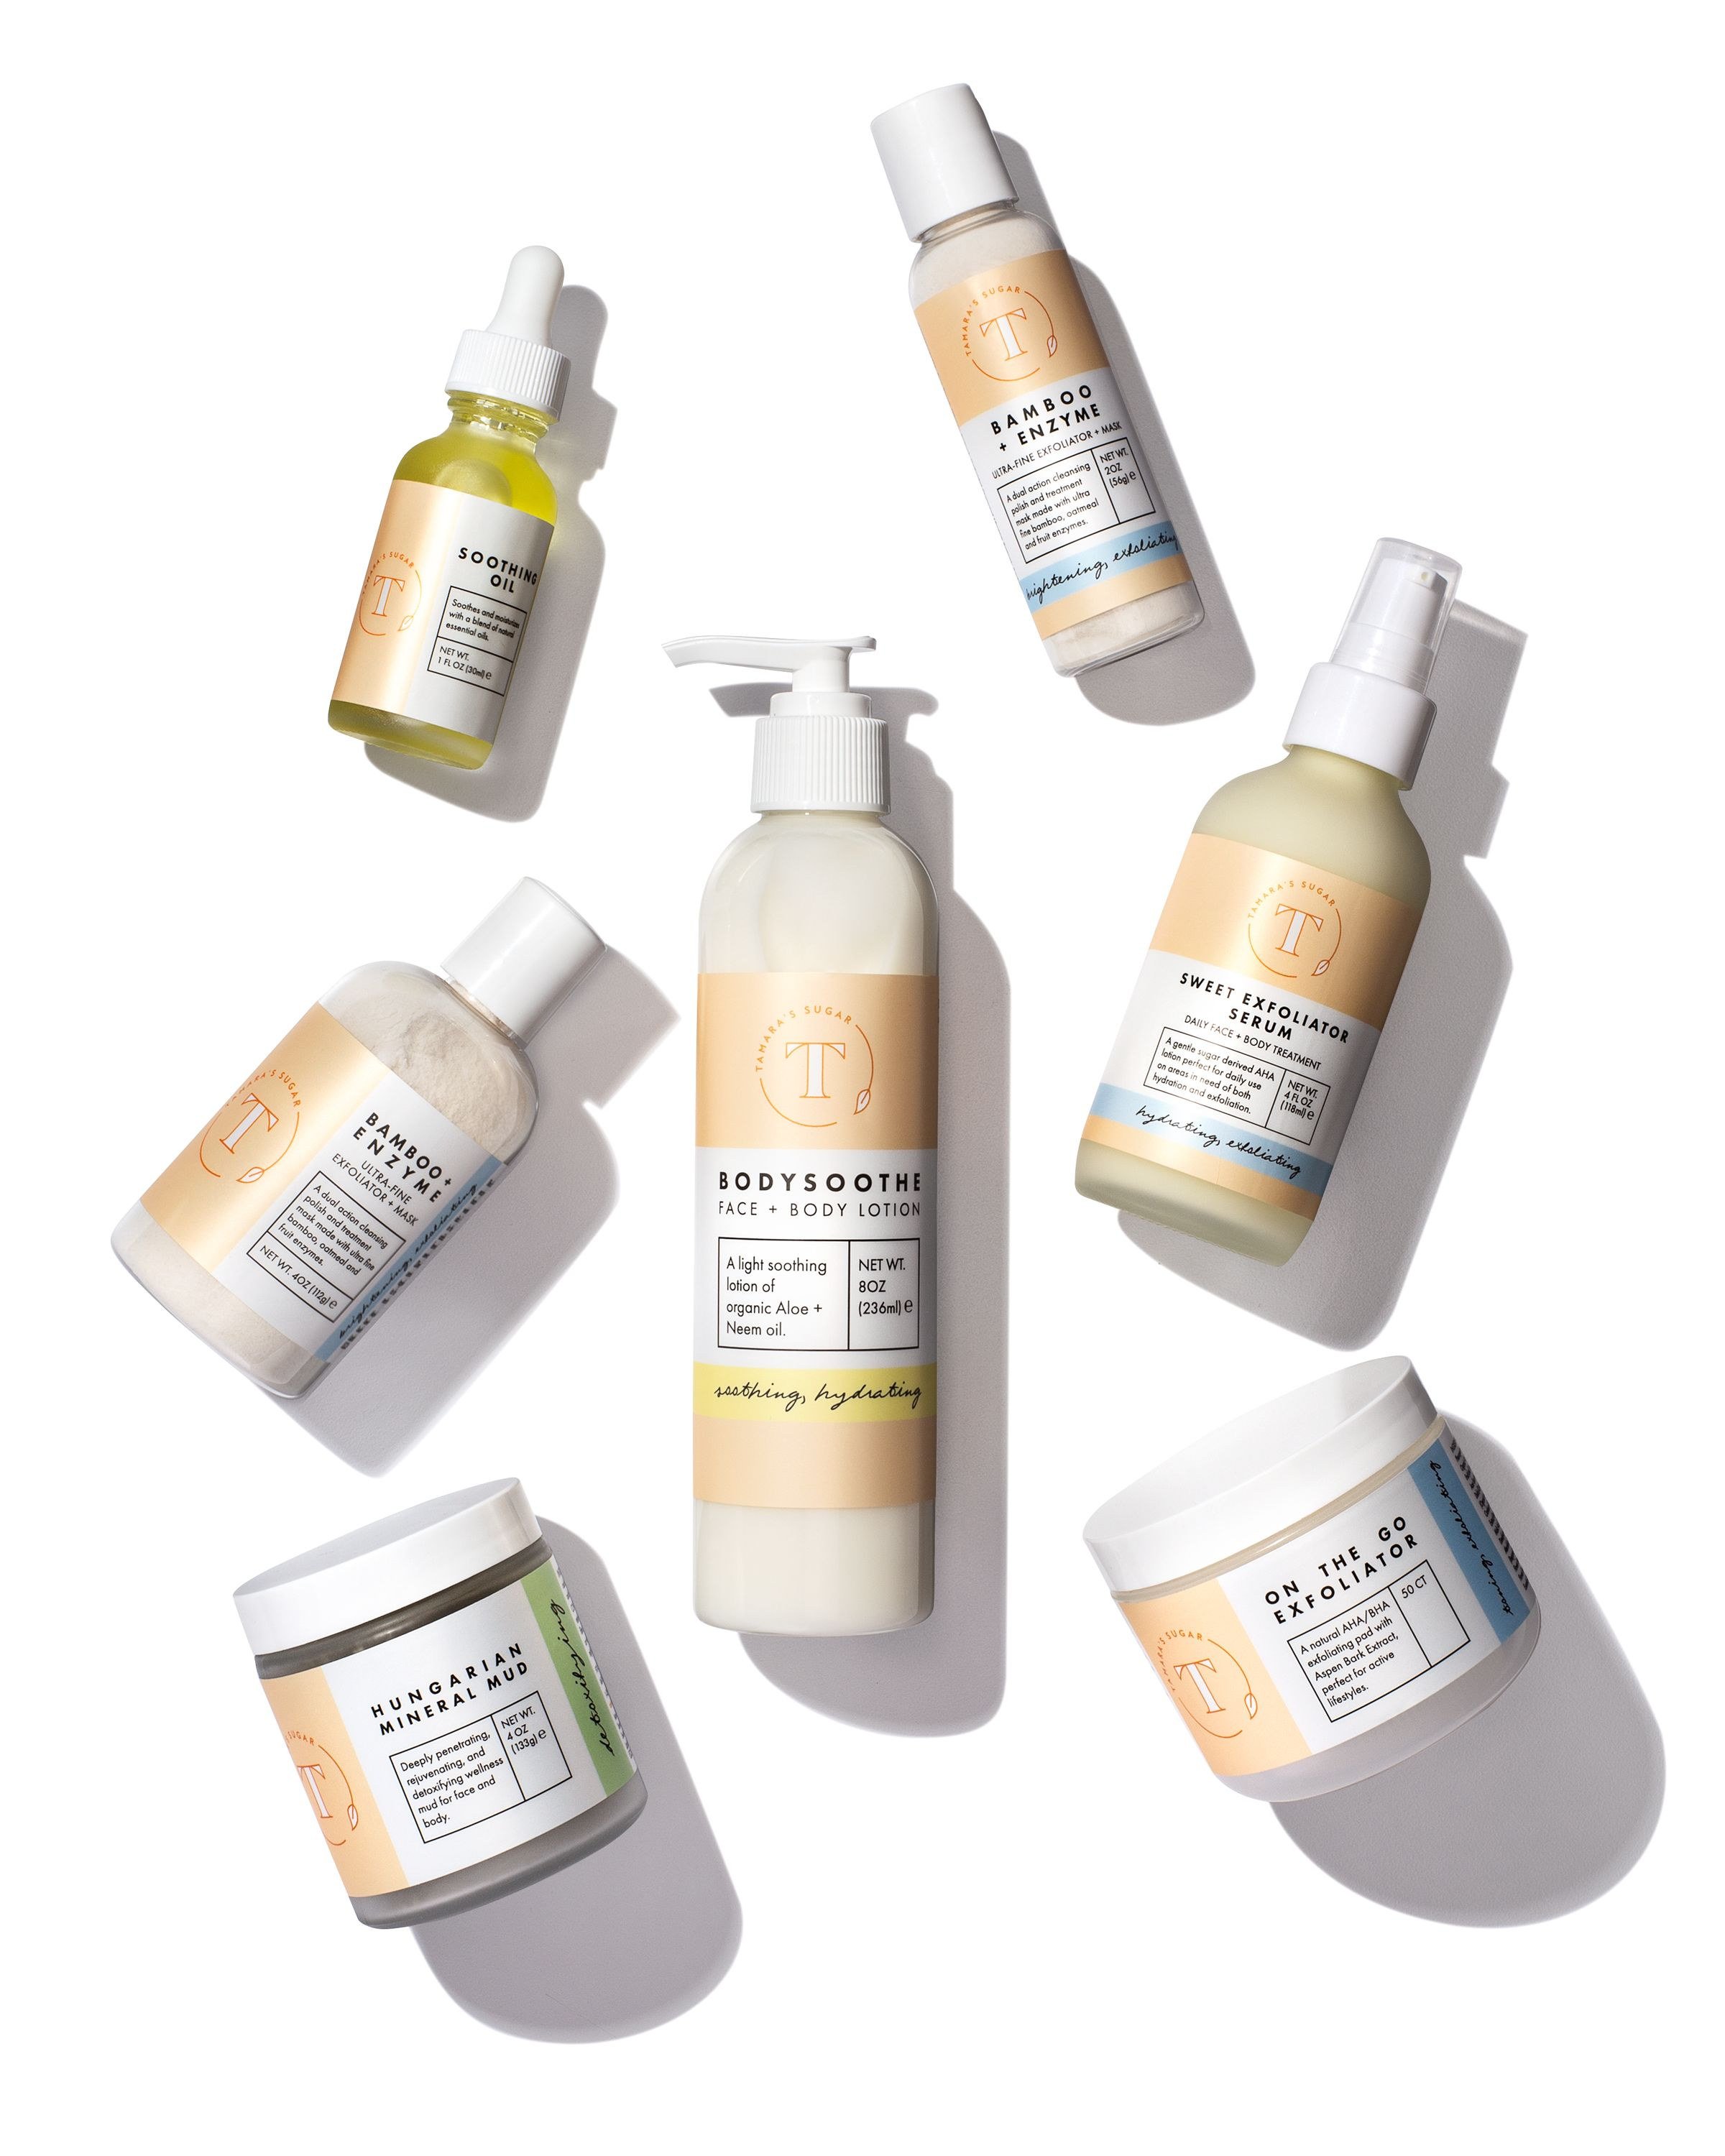 Tamara's Sugar Retail Line BodySoothe Lotion, Soothing Oil